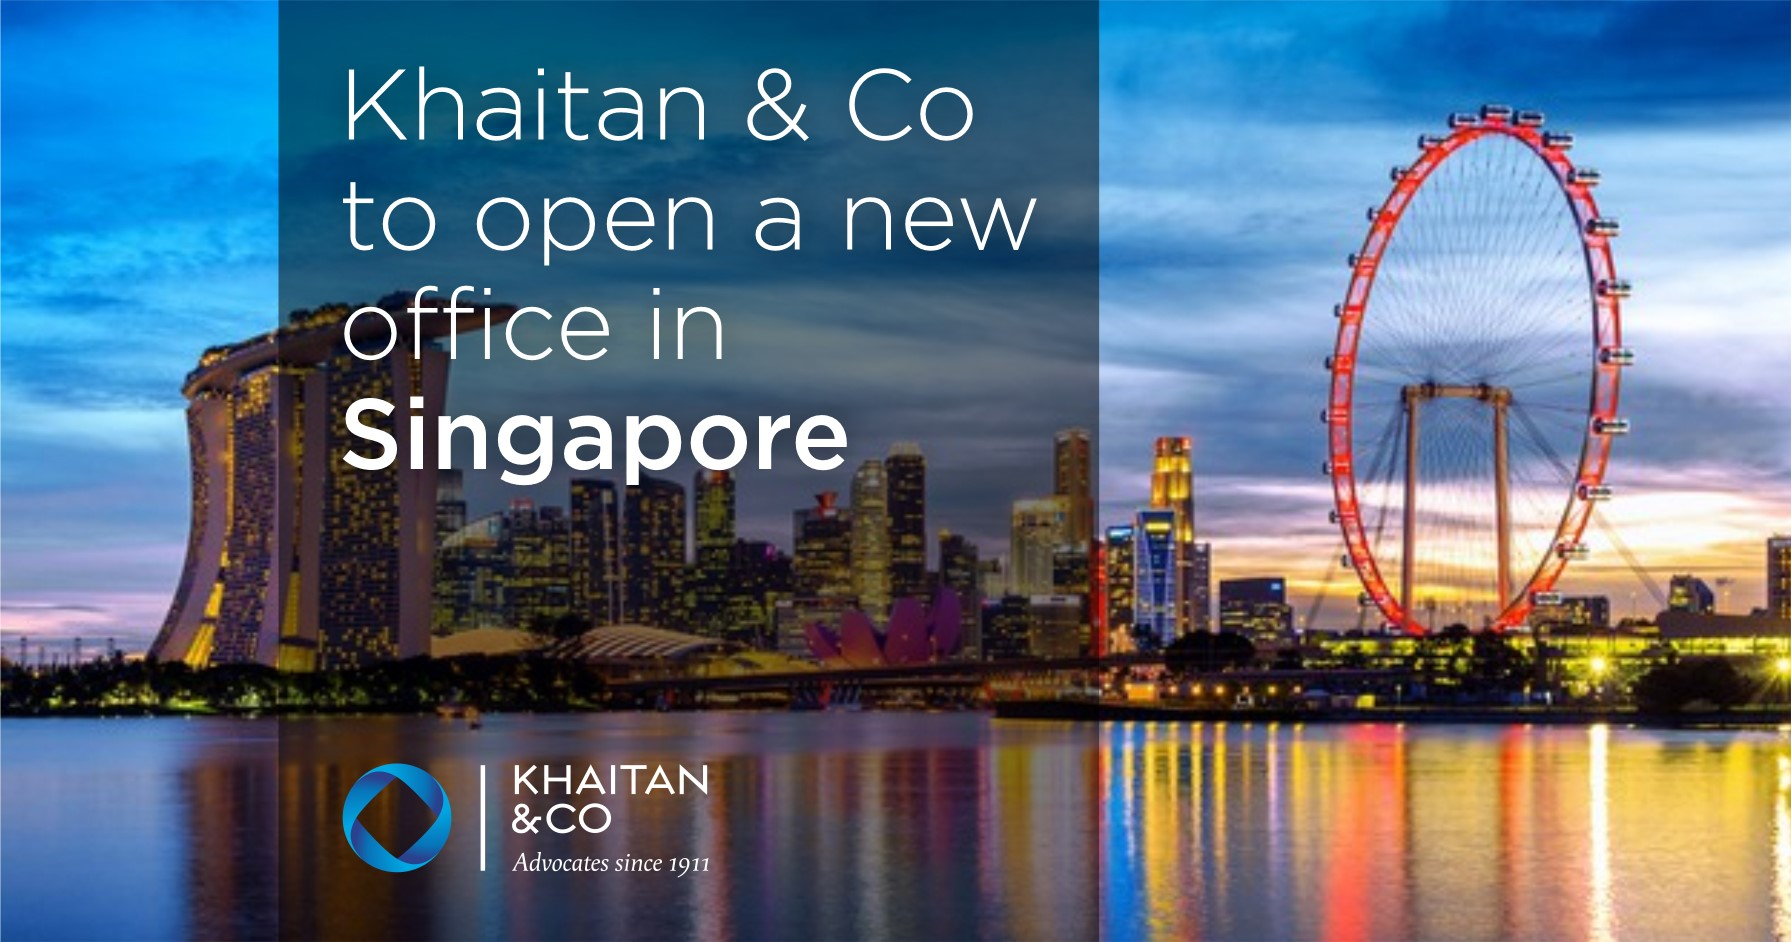 Khaitan & Co to open new Office in Singapore